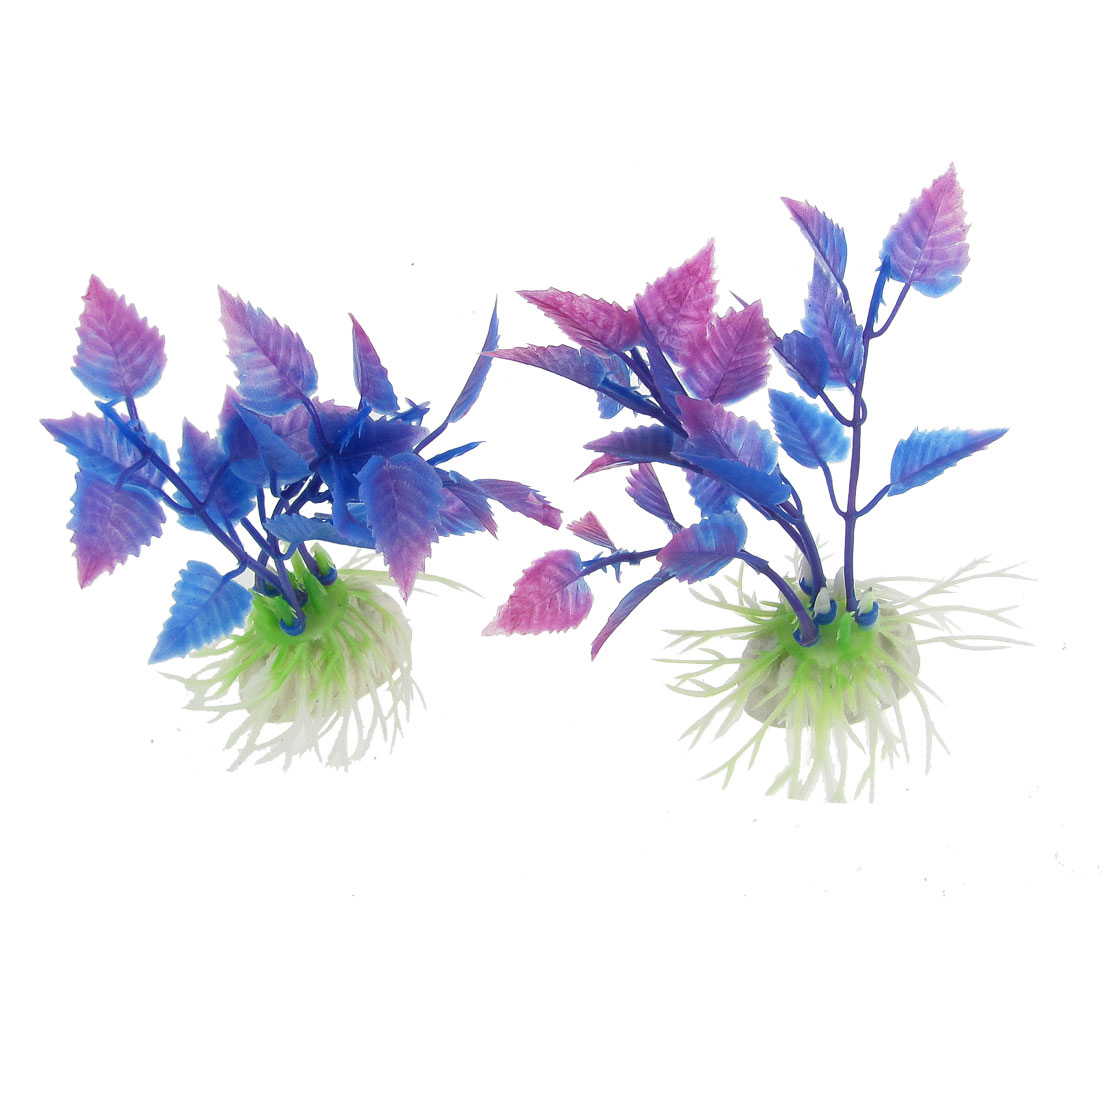 2 Pcs Fuchsia Blue Plastic Water Plants Decor for Aquarium